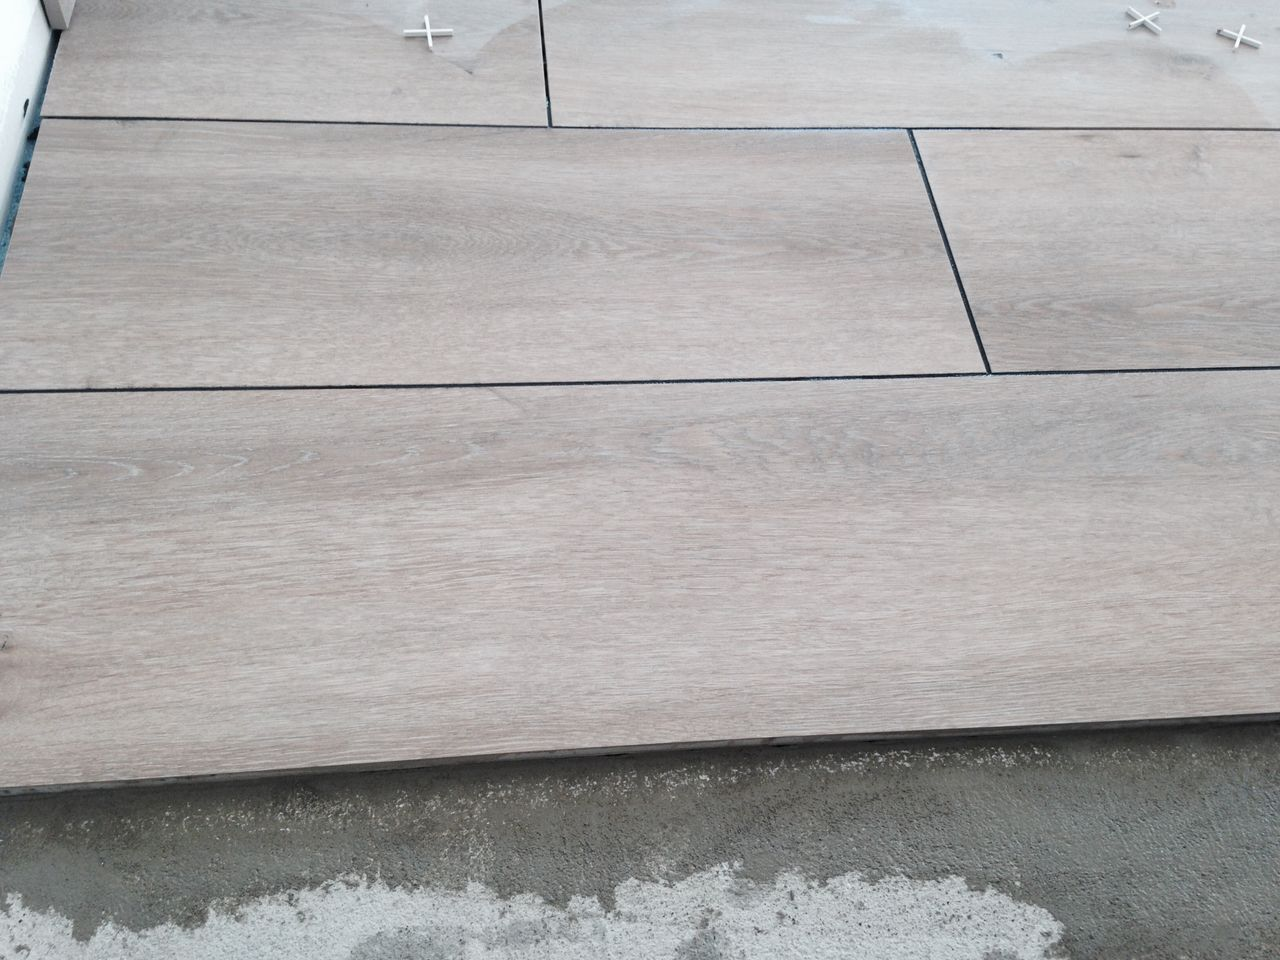 Quelle couleur de joints pour carrelage imitation parquet for Pose de joint de carrelage